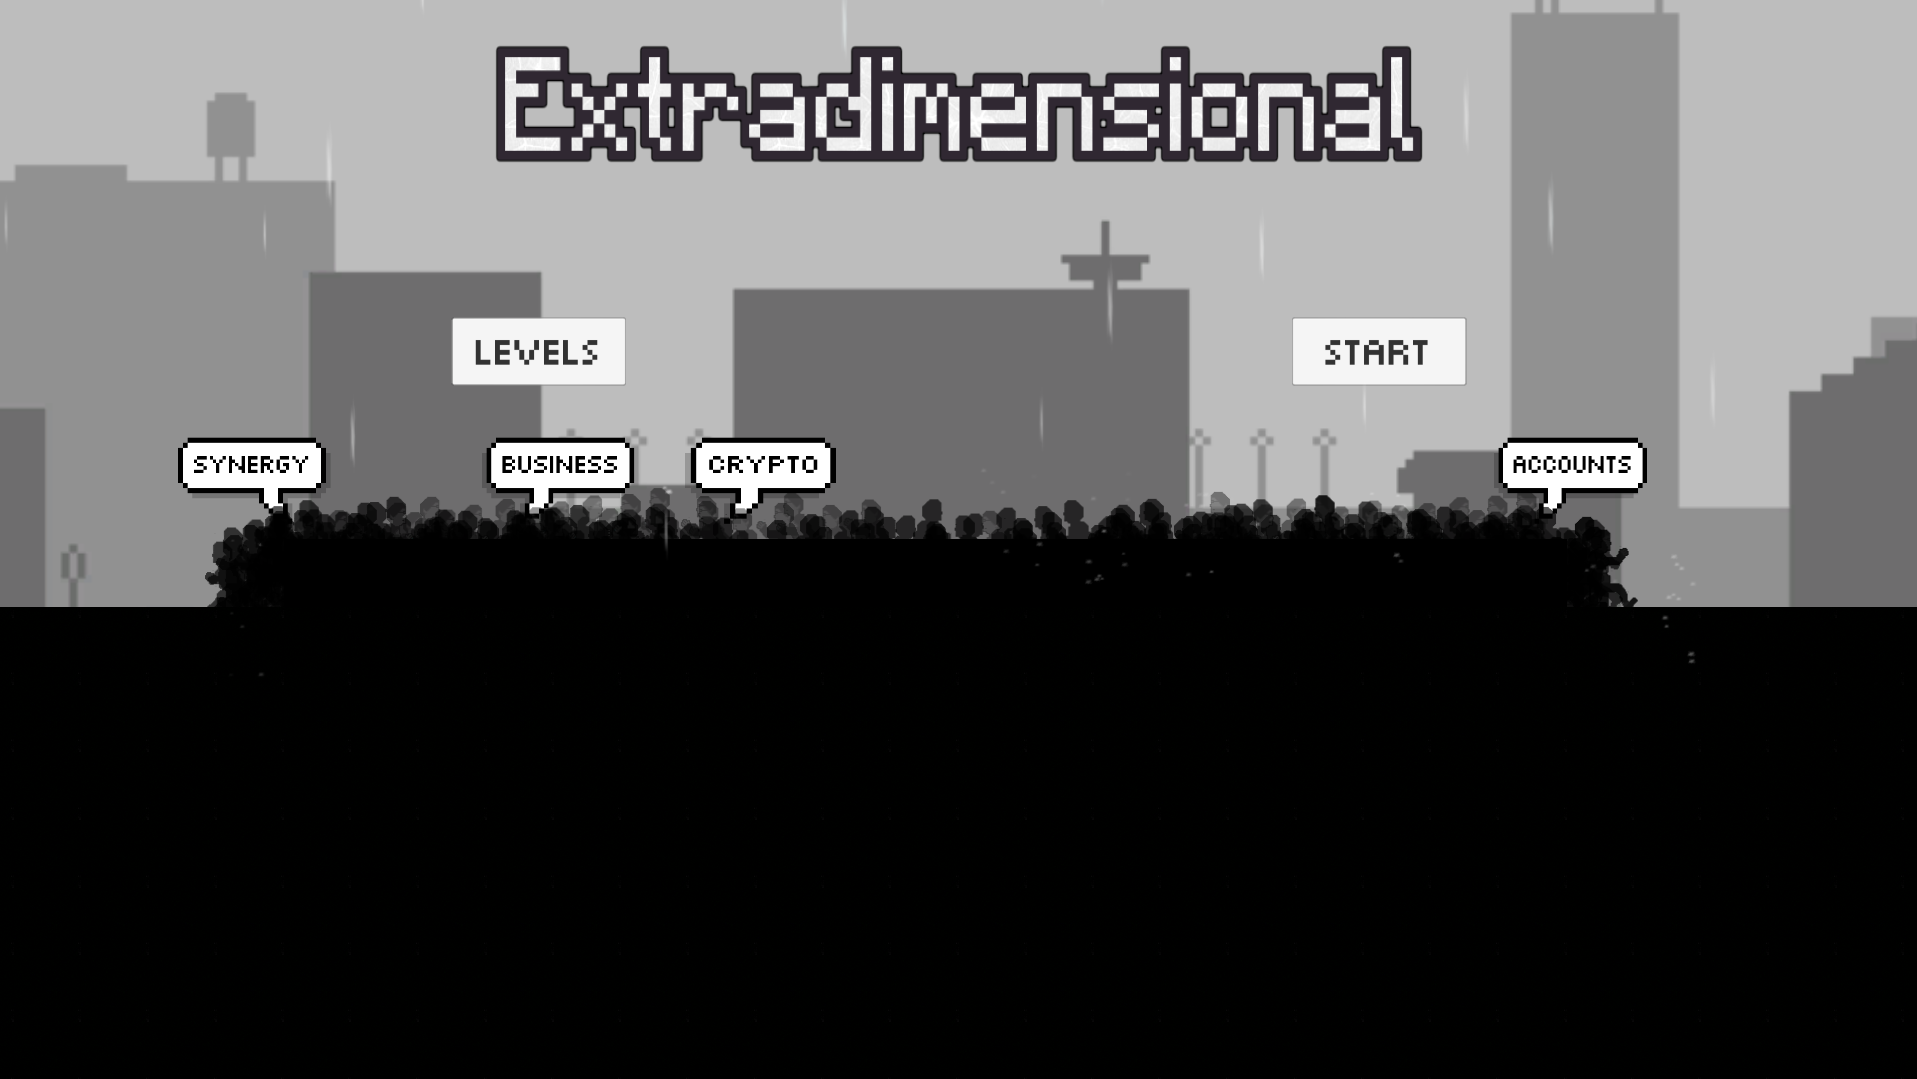 Extradimensional game